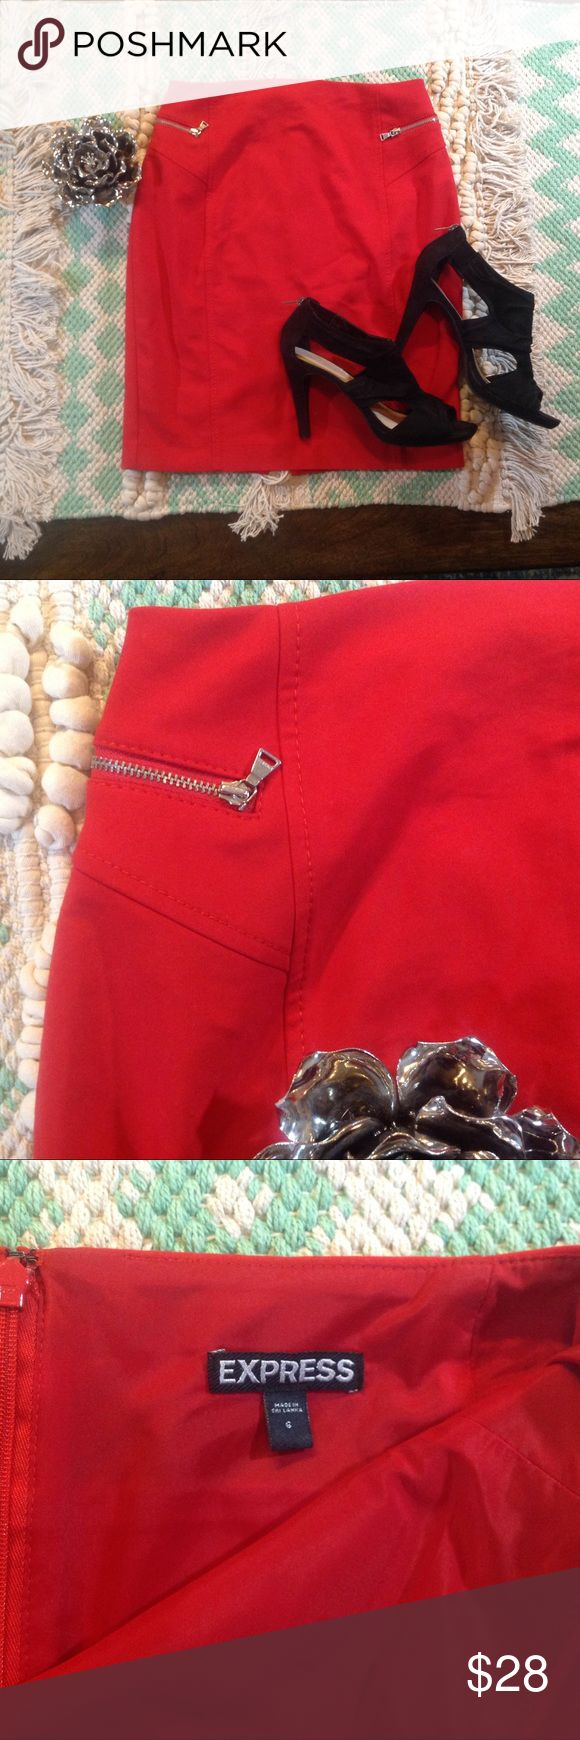 Red Hot Pencil Skirt w/Zippers by Express This is sexy red pencil skirt by Express. There are faux zipper pockets on the front. Great used condition. Size 6. Express Skirts Pencil